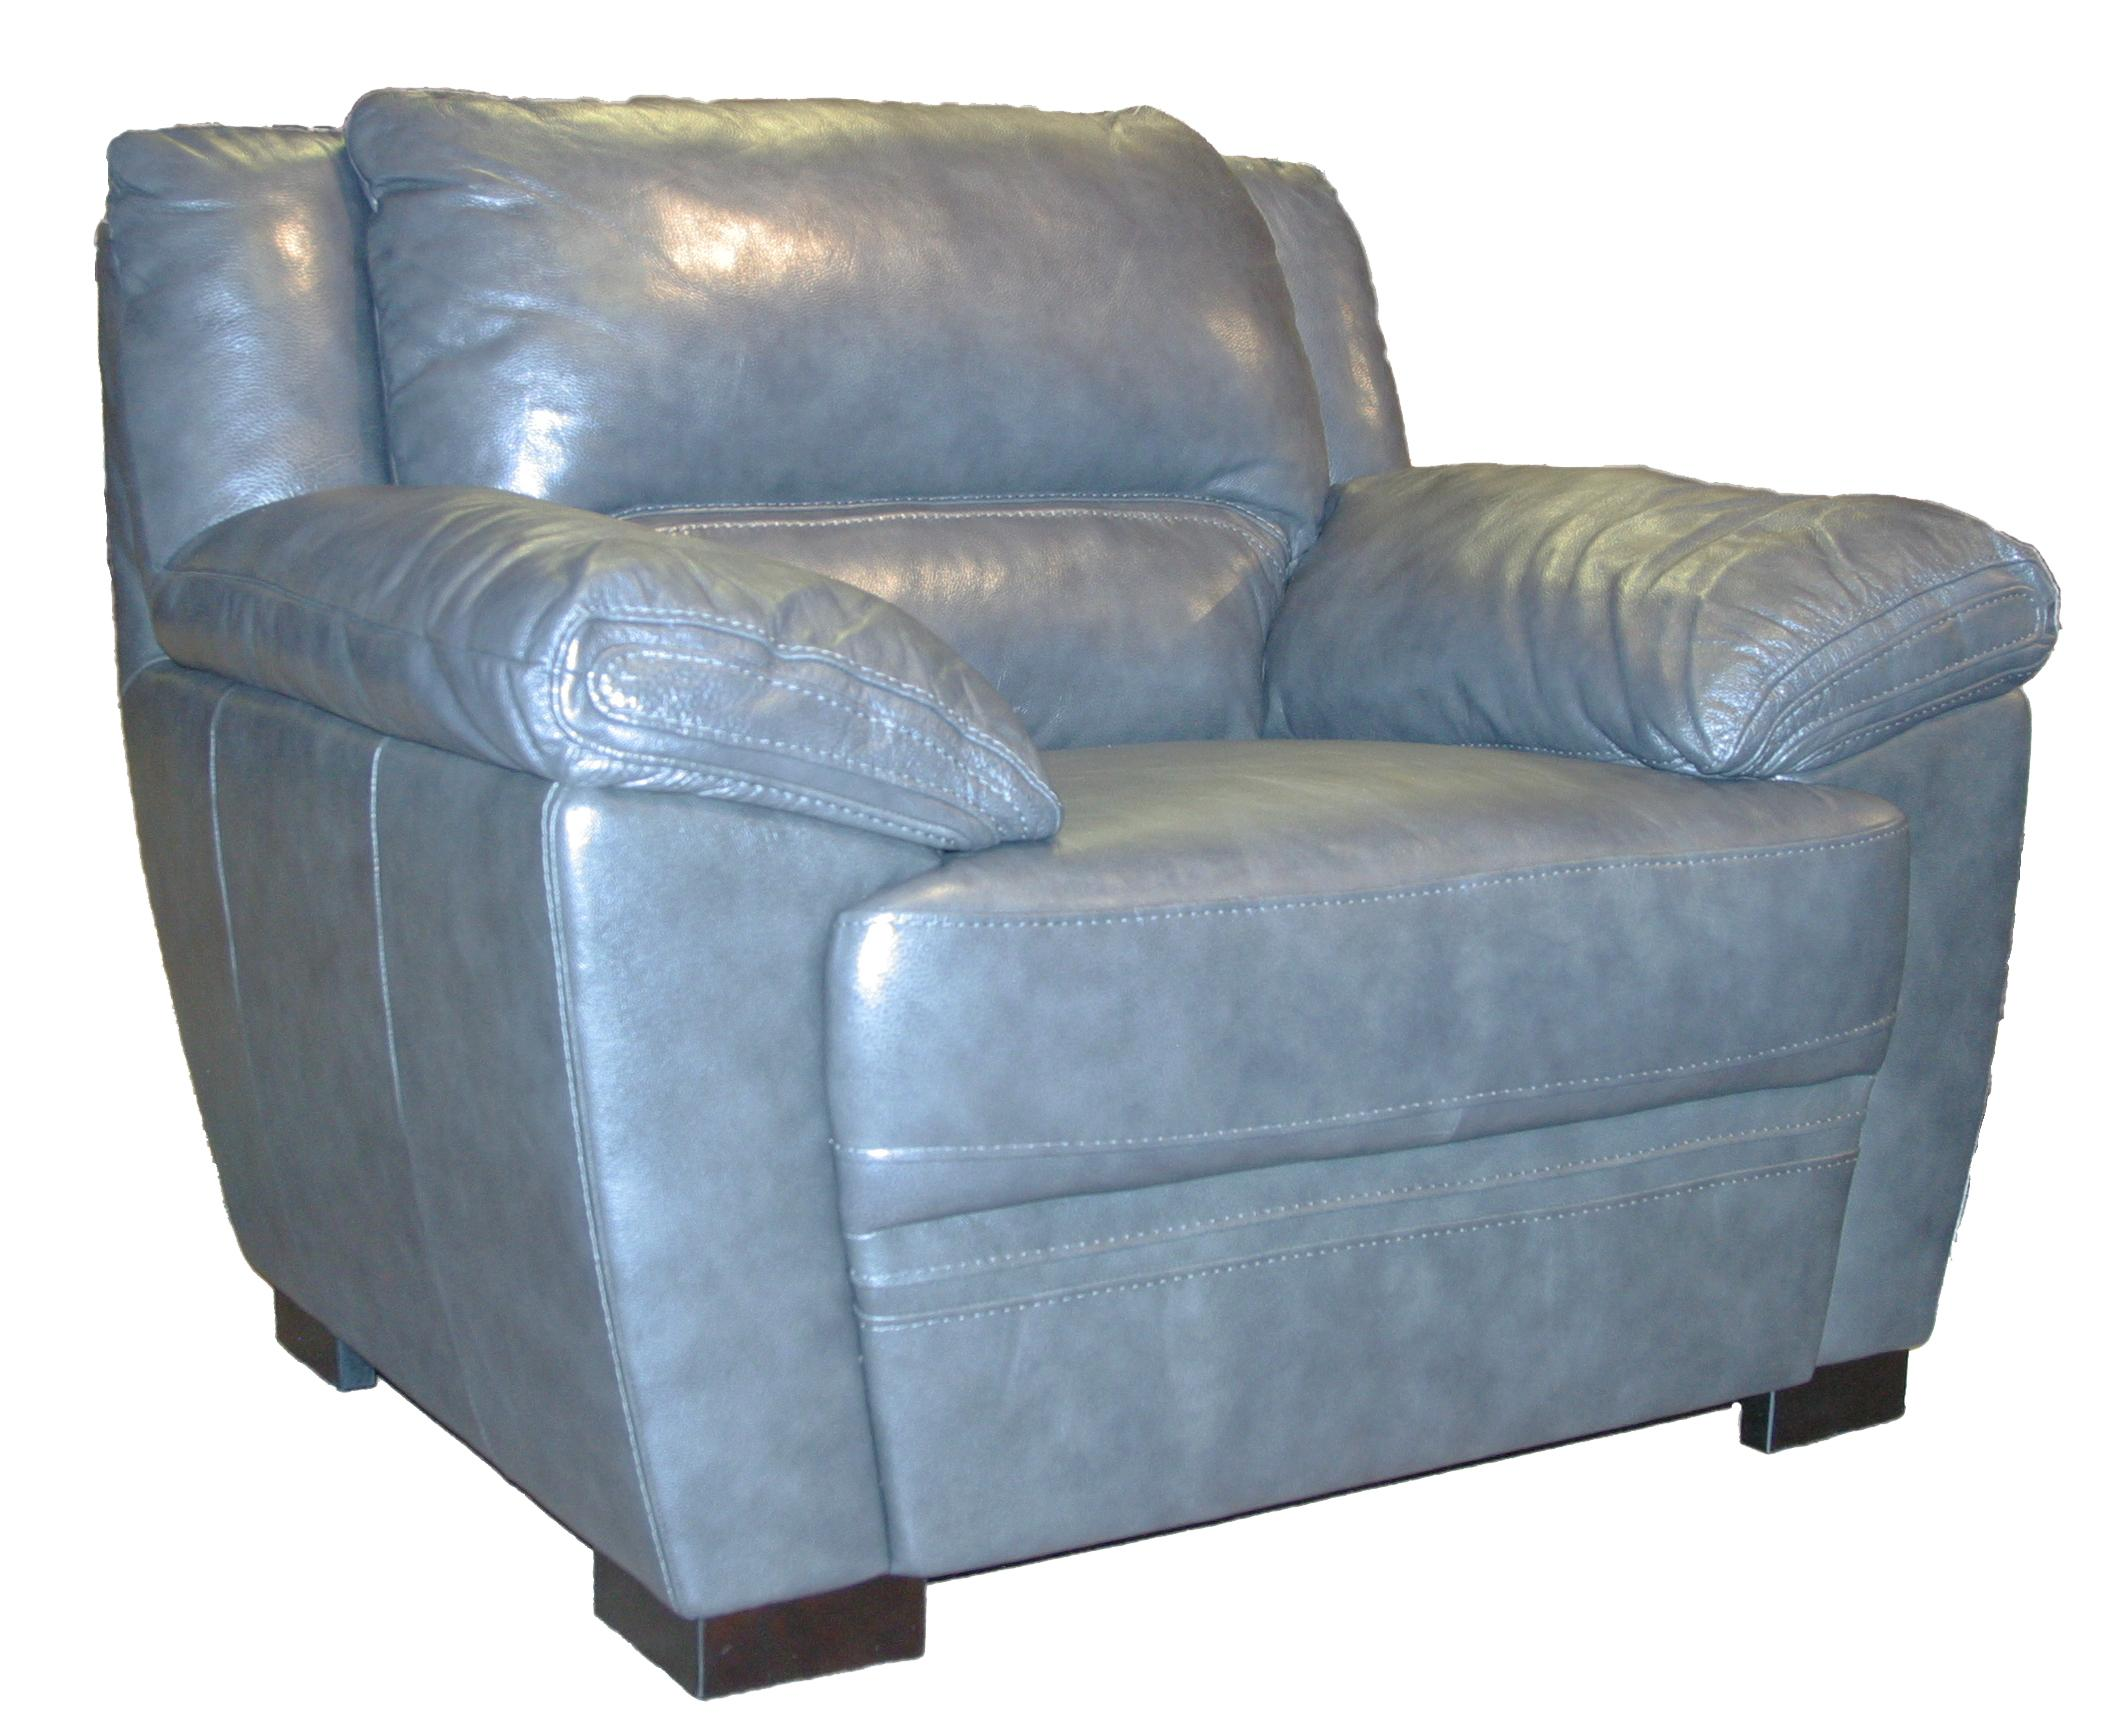 BFW Lifestyle 1963 Casual Chair - Item Number: 1963 Chair M1215 Dk Grey